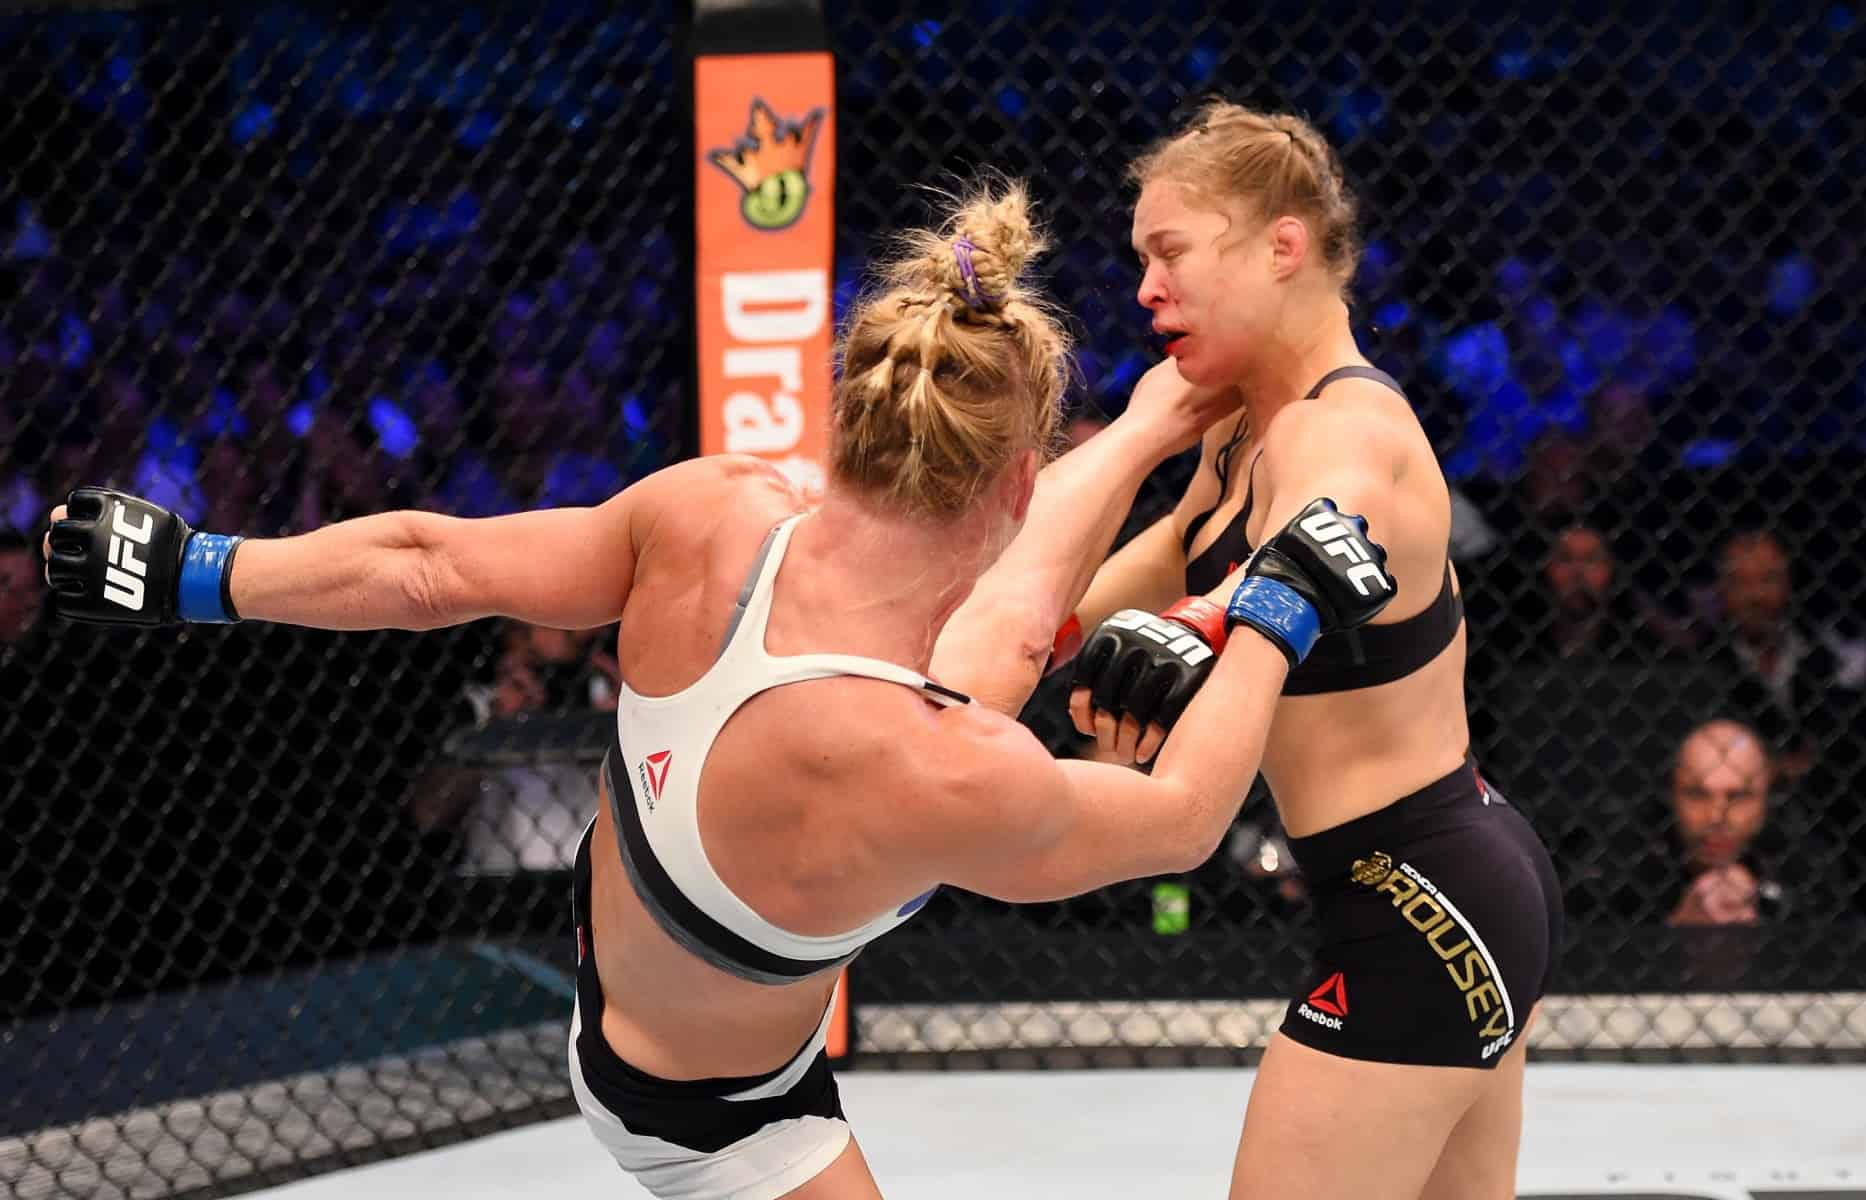 UFC 193 – Holly Holm KO Ronda Rousey